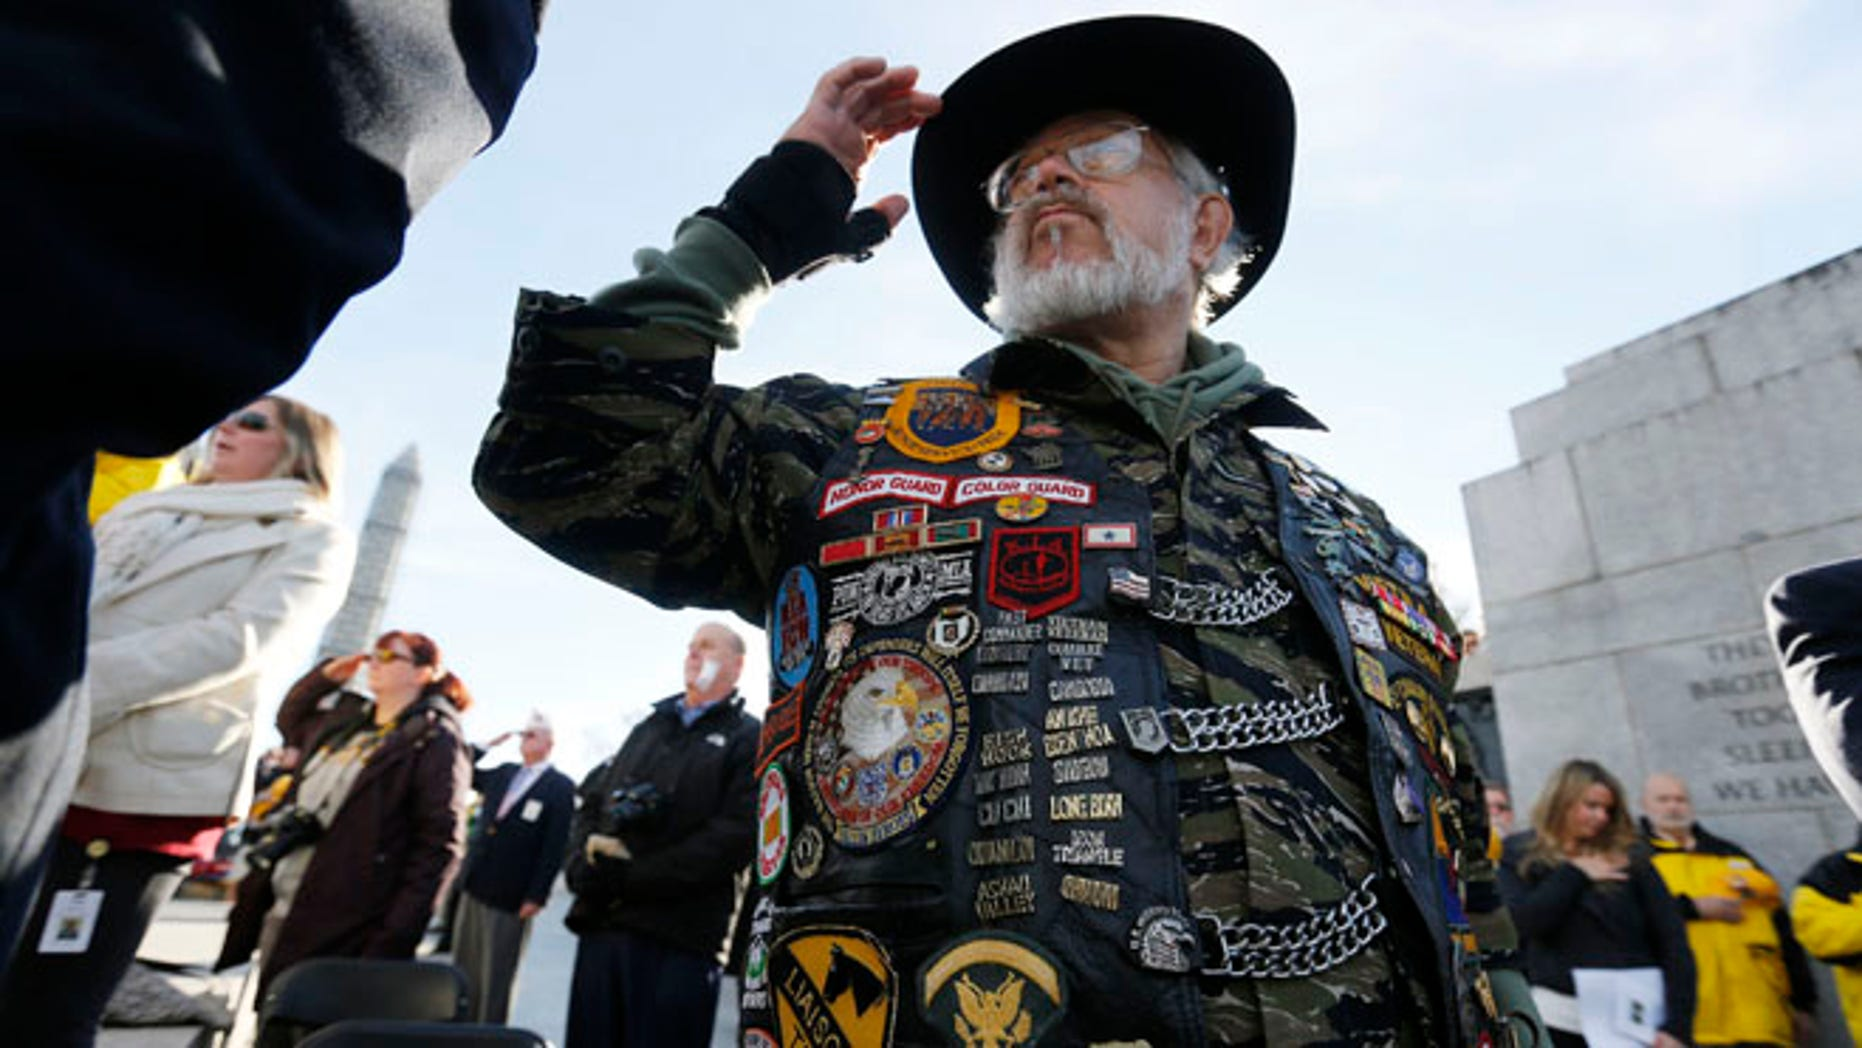 Vietnam veteran Paul Troop, honors his fallen comrades while at the World War II Memorial on Veterans Day in Washington, Nov. 11, 2013.